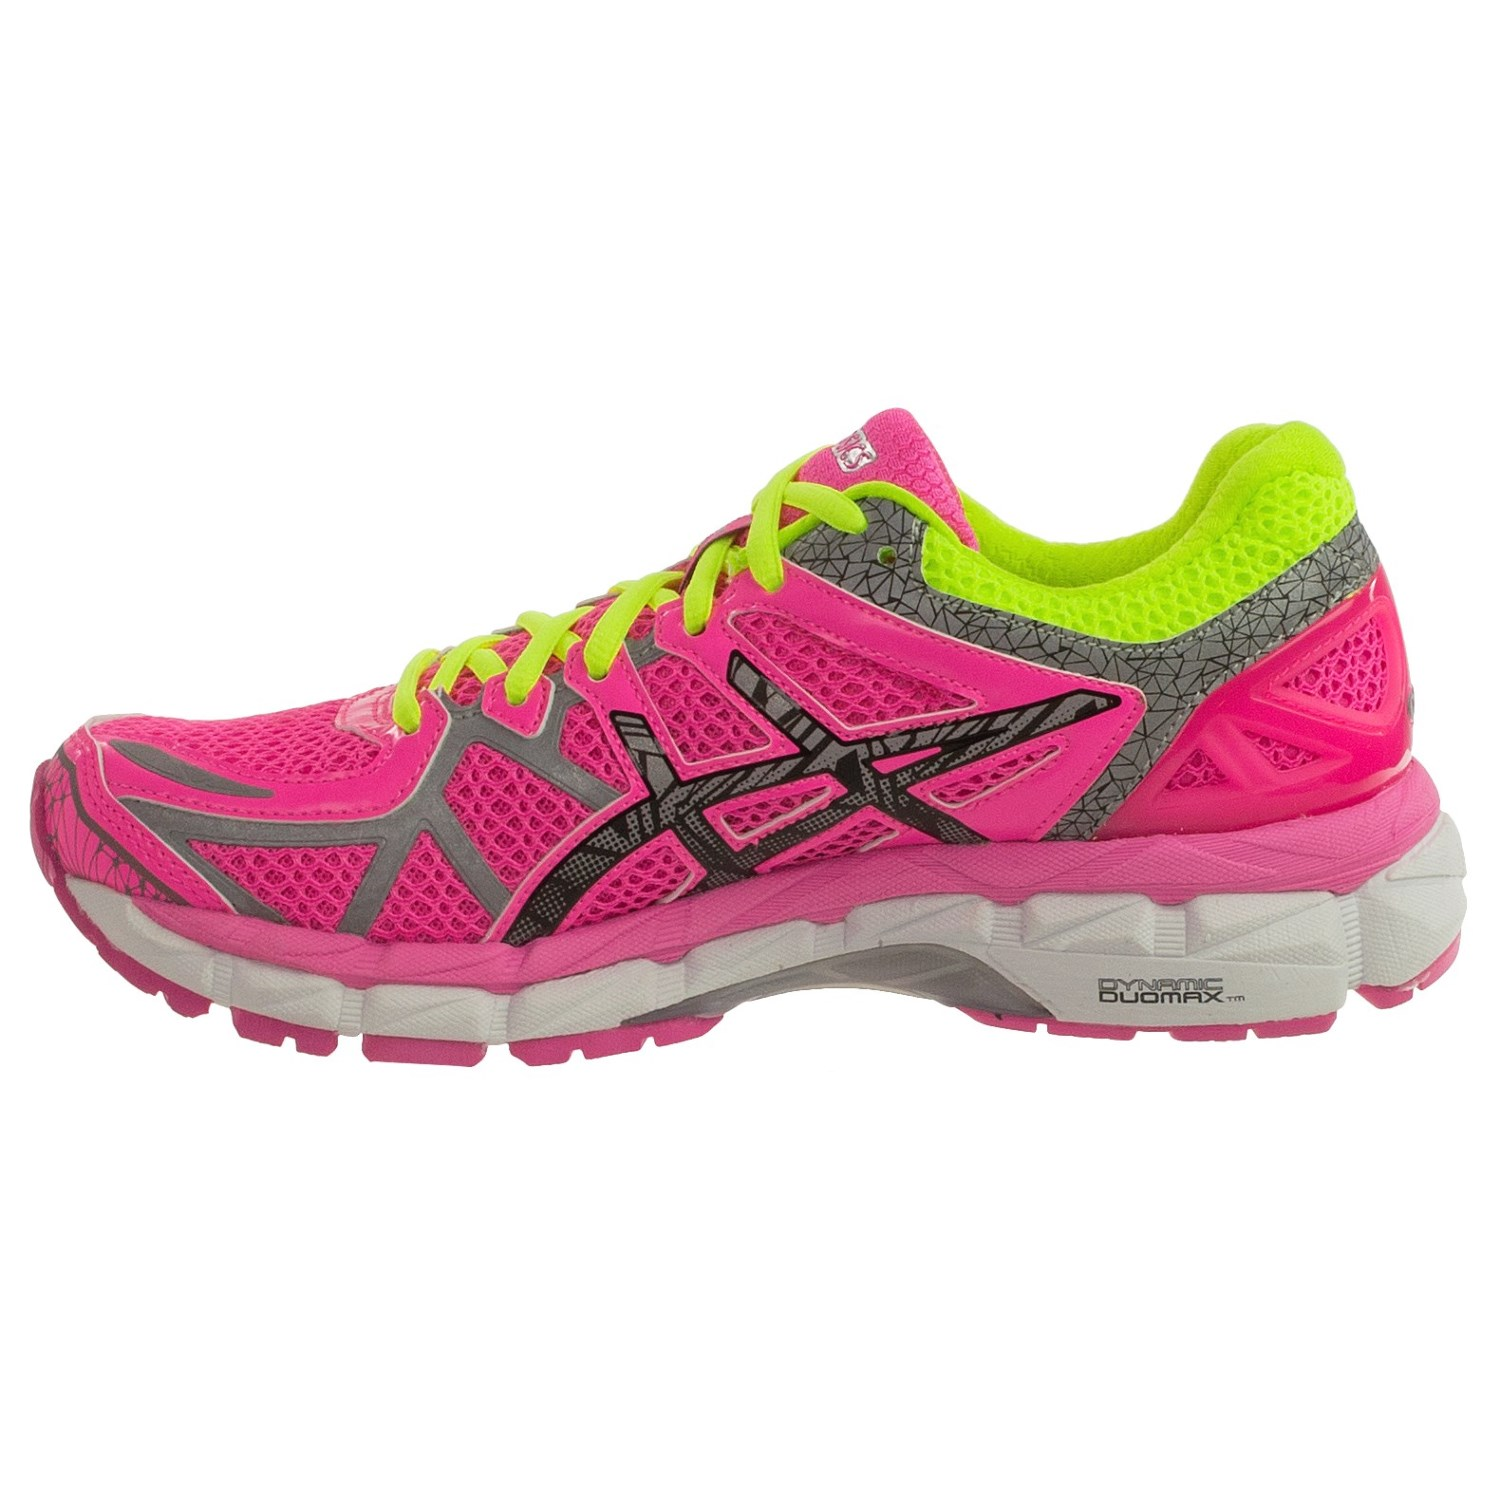 asics gel kayano 21 lite show running shoes for women 9587r save 29. Black Bedroom Furniture Sets. Home Design Ideas